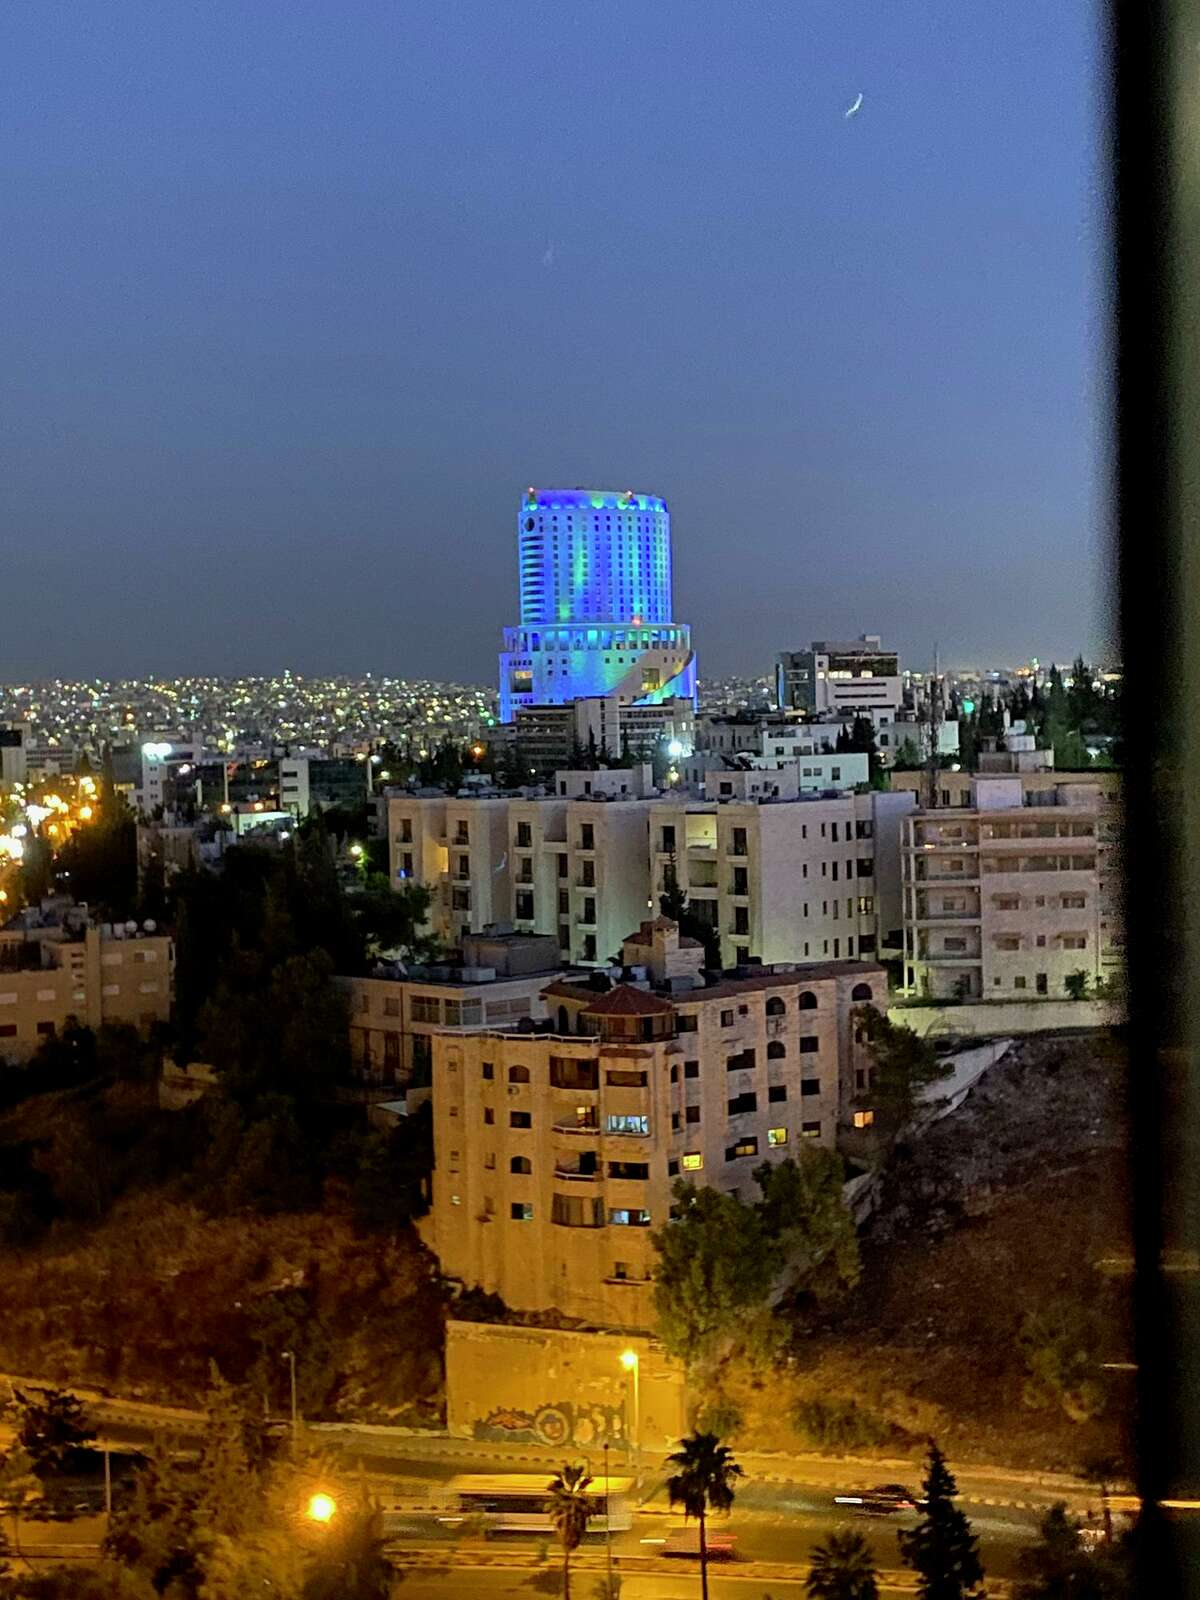 The view out the hotel window in downtown Amman with Le Royal Hotel in the distance lit up in blue.